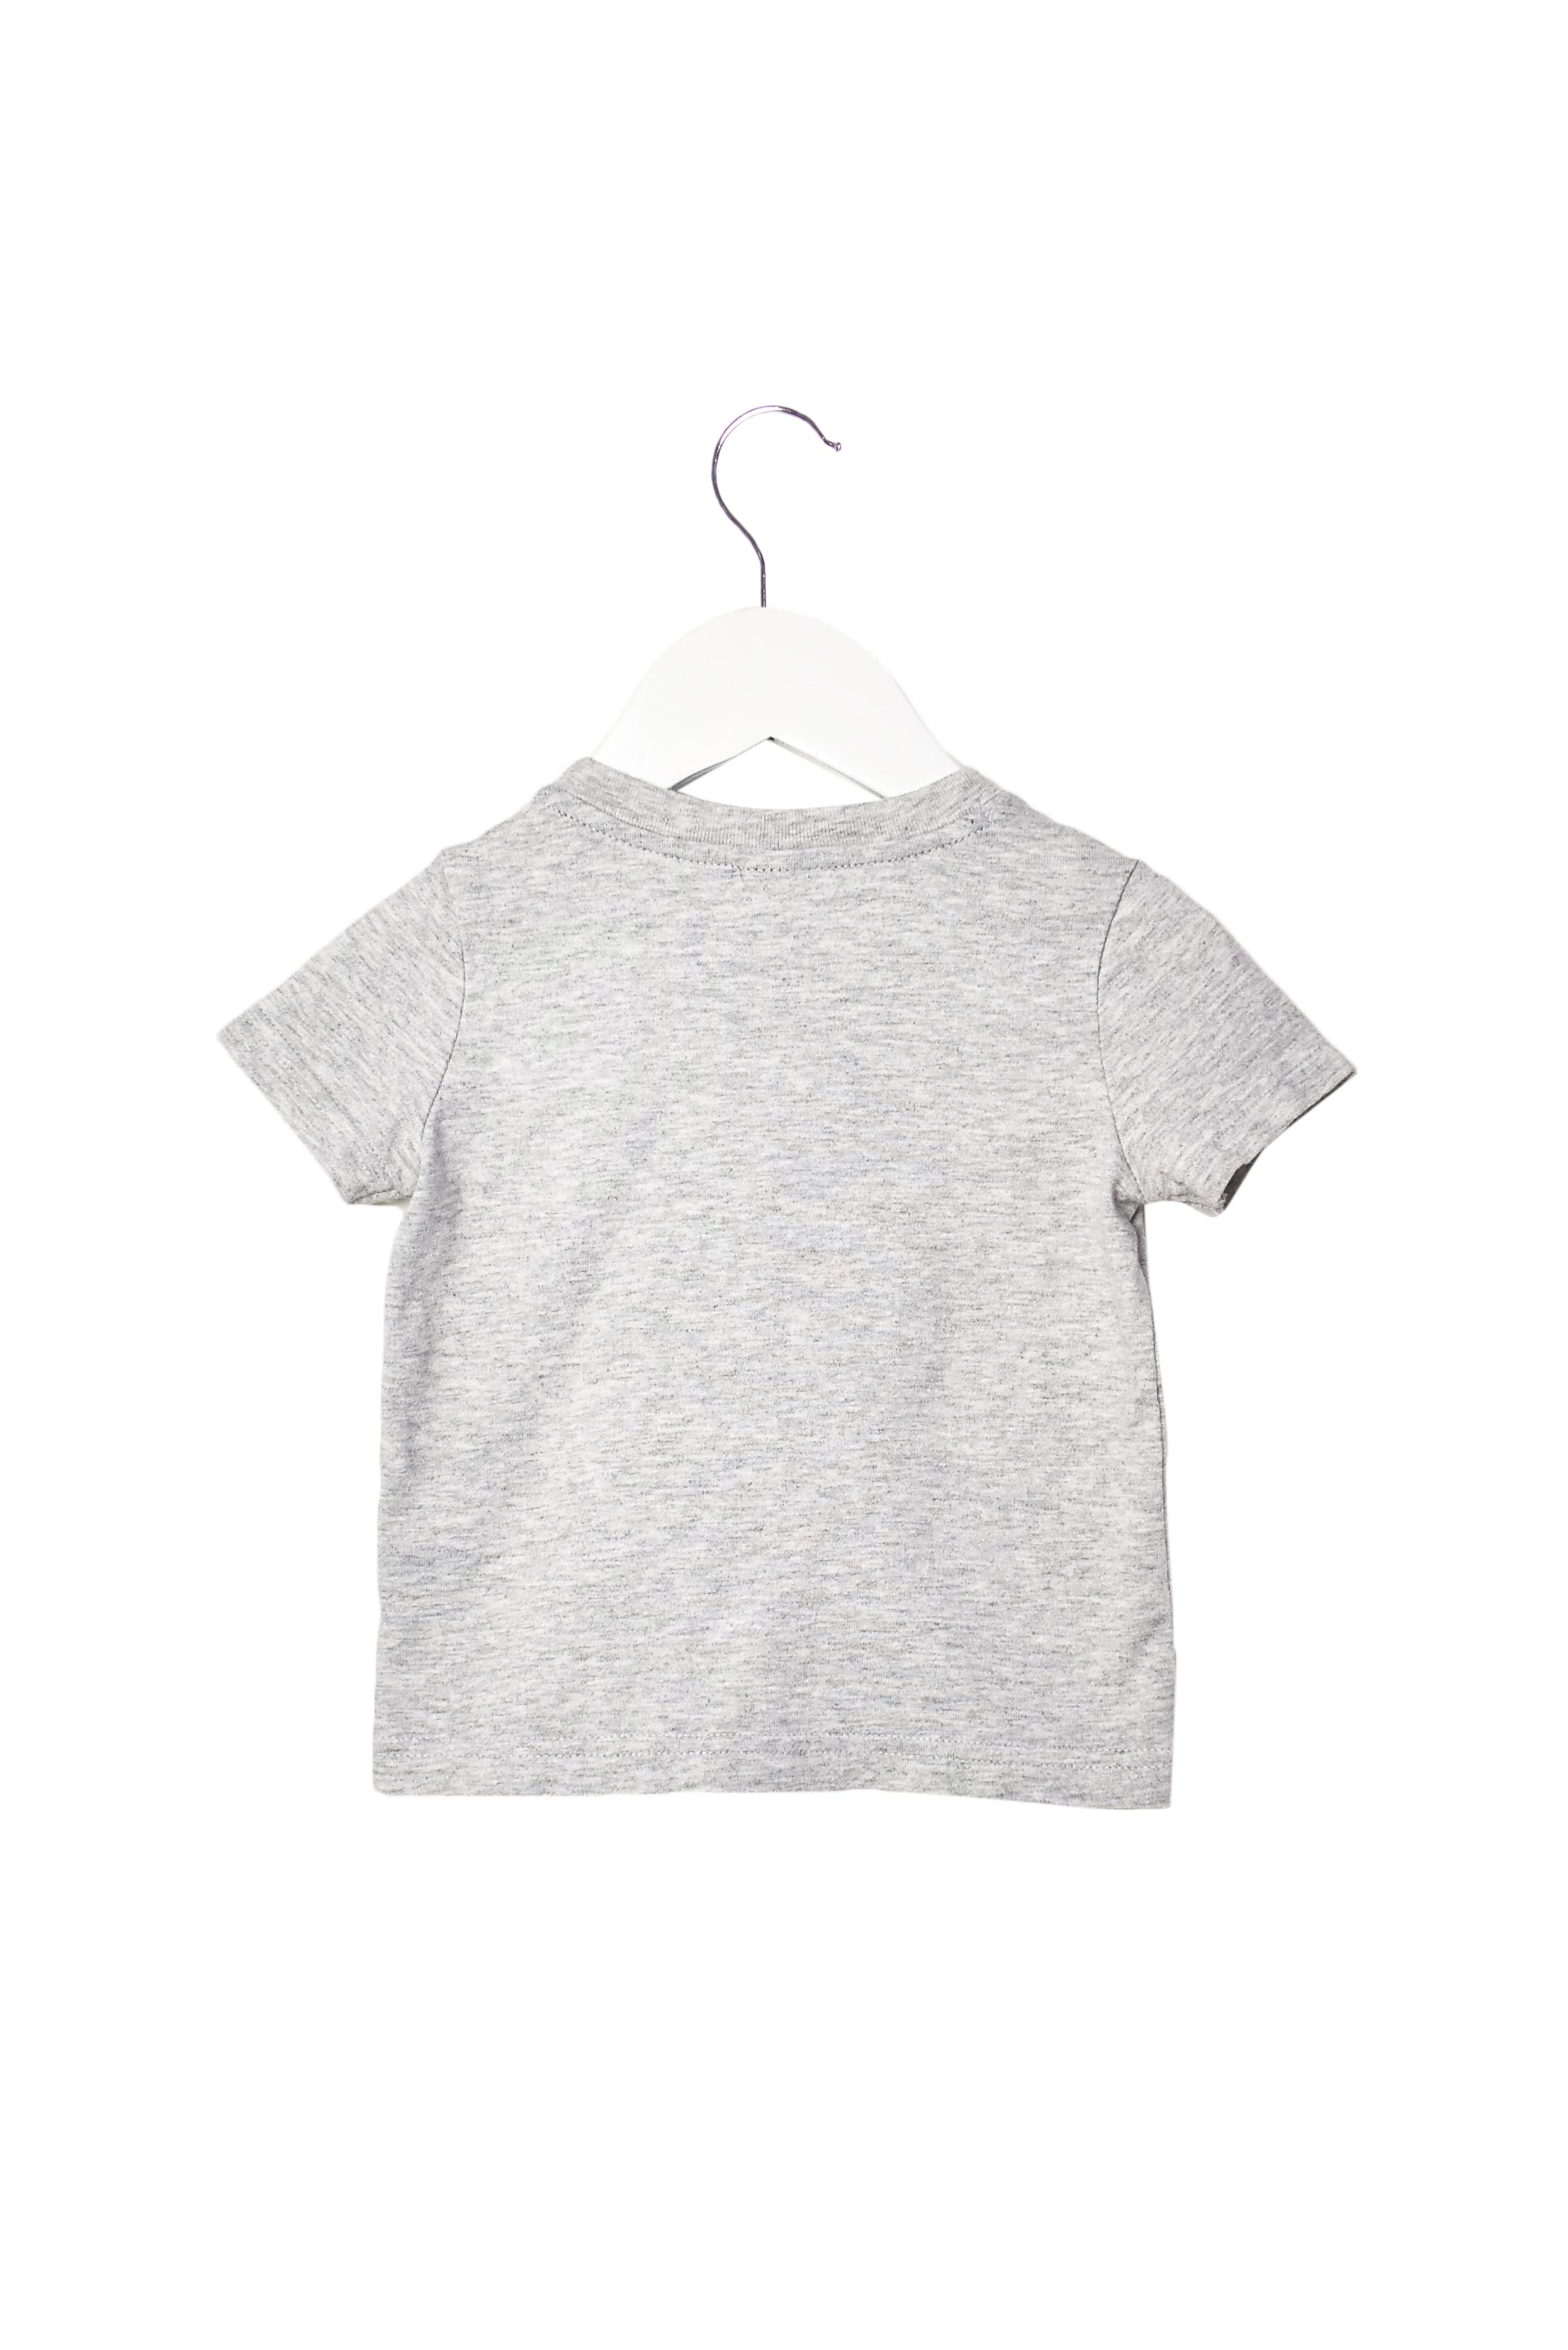 10006407 Janie & Jack Baby~T-shirt 6-12M at Retykle